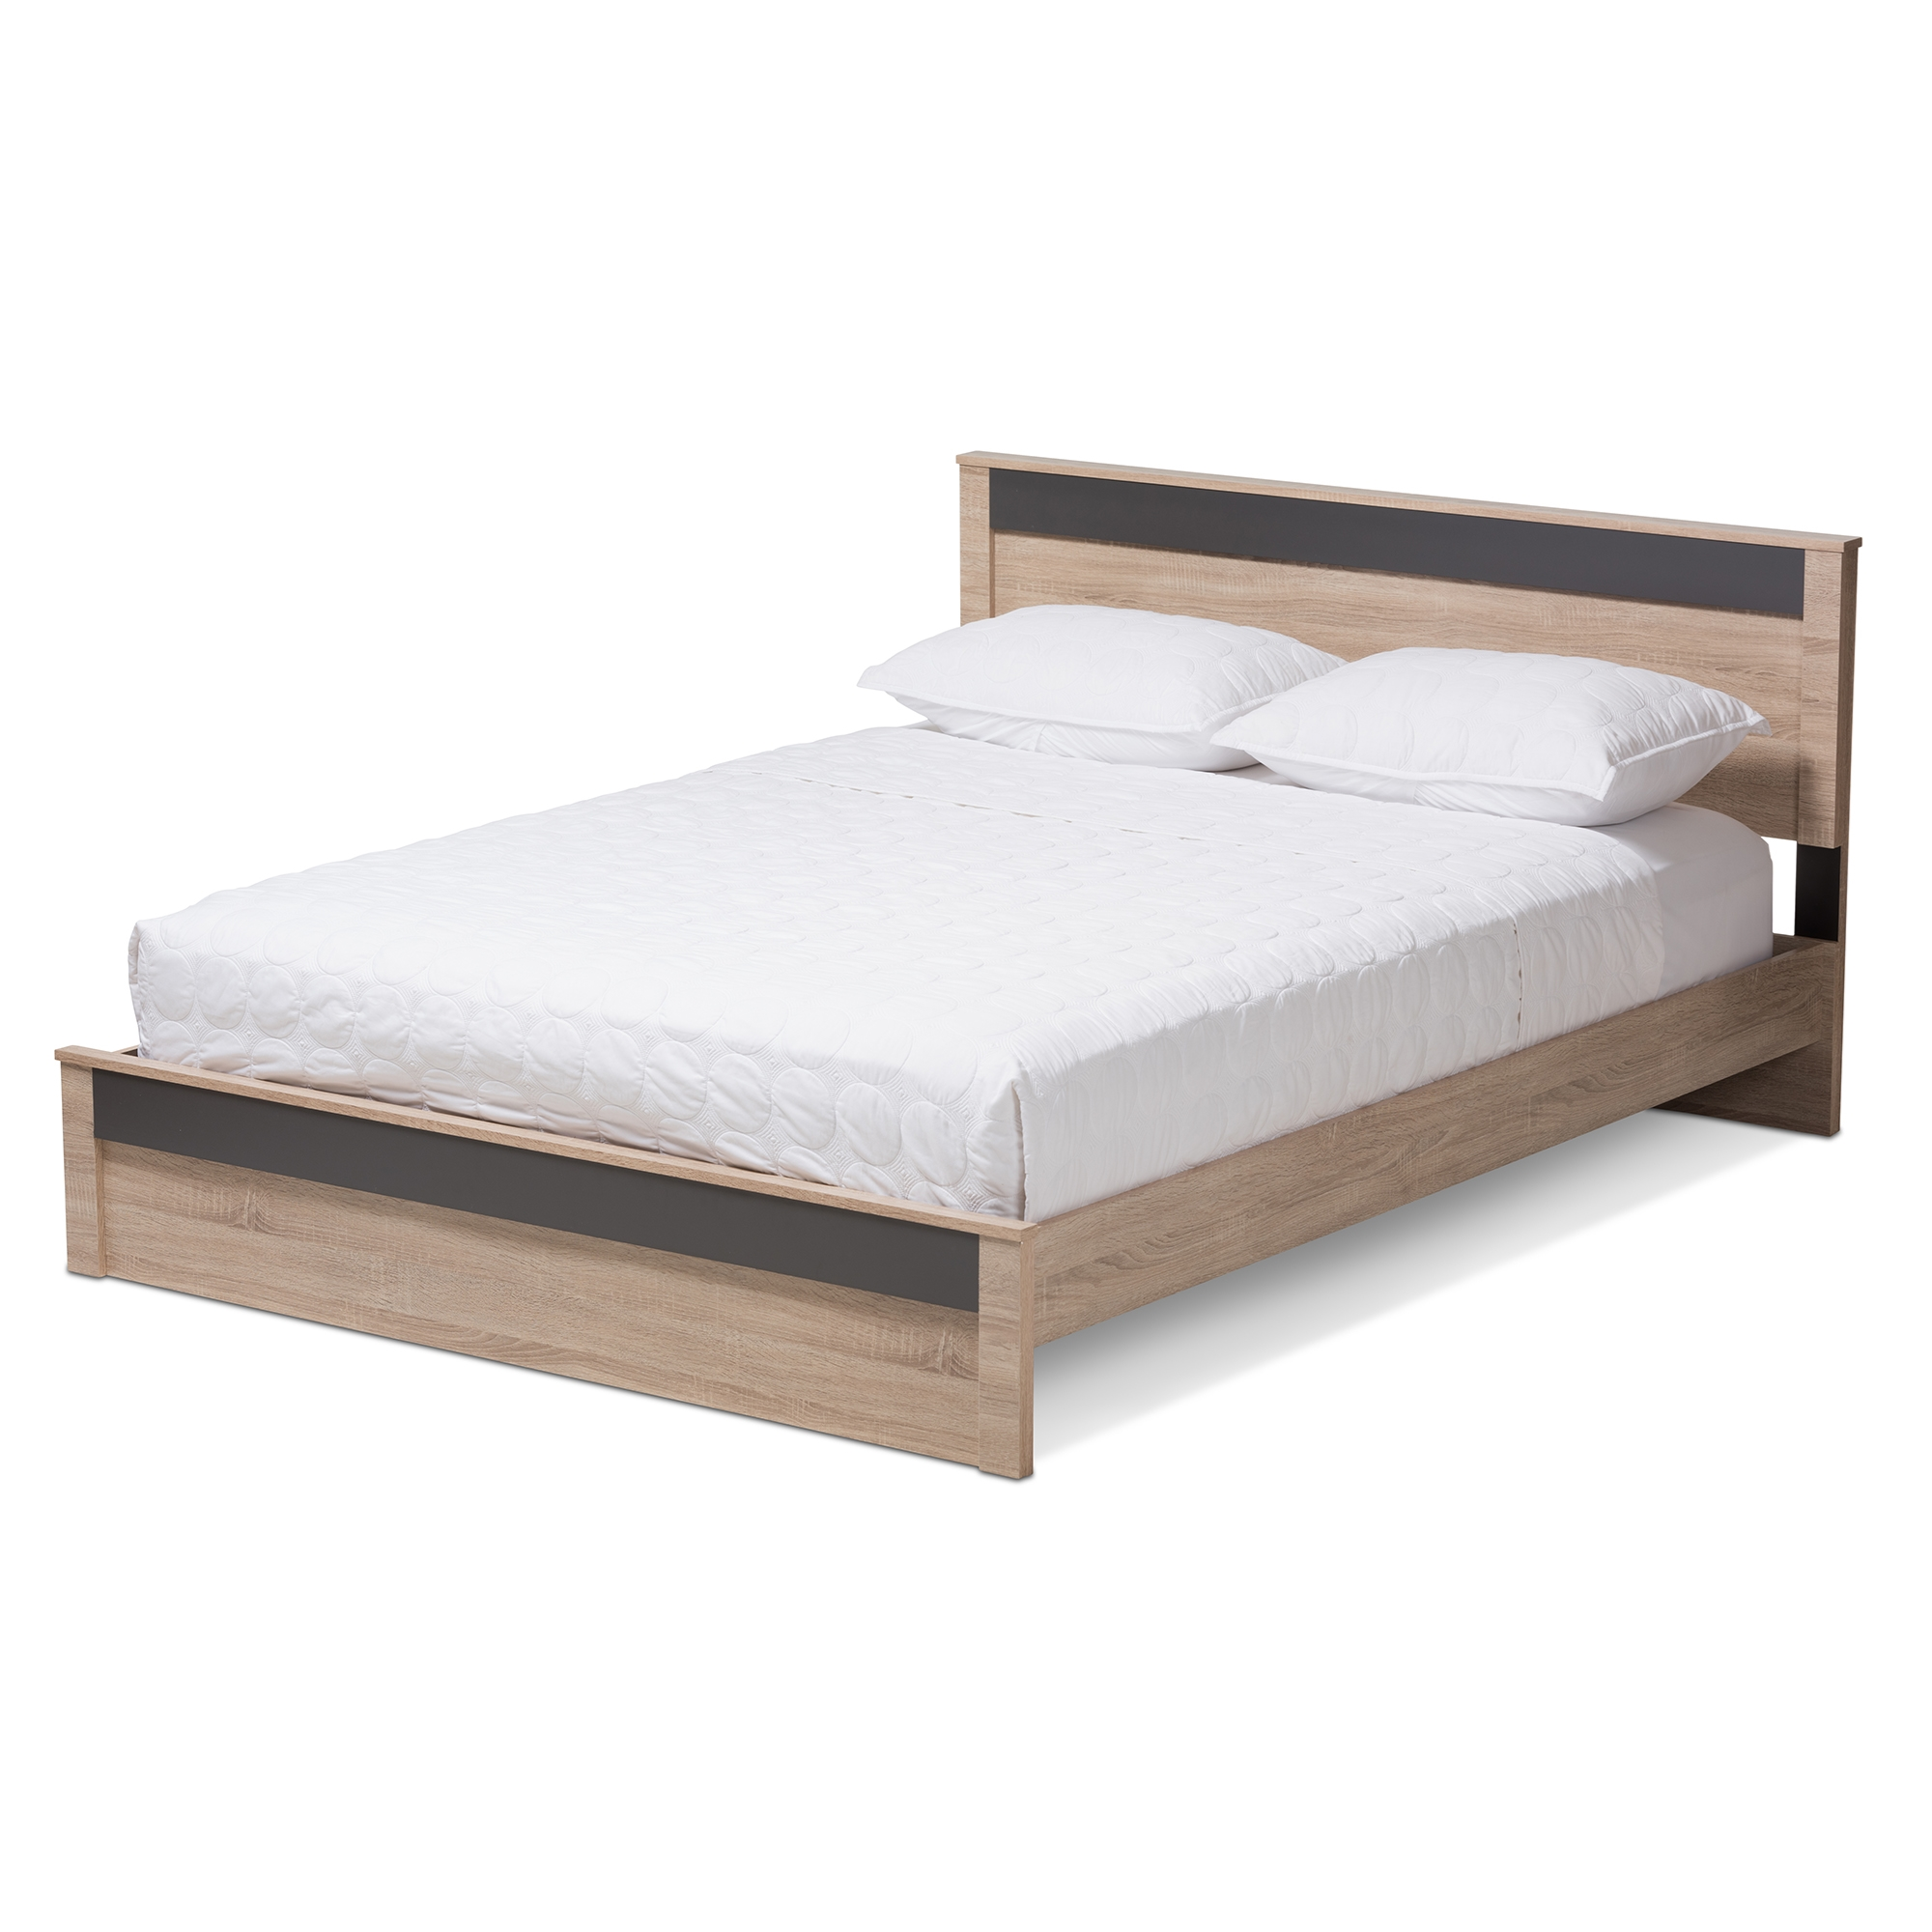 Size Of Queen Bed Baxton Studio Jamie Modern And Contemporary Two Tone Oak And Grey